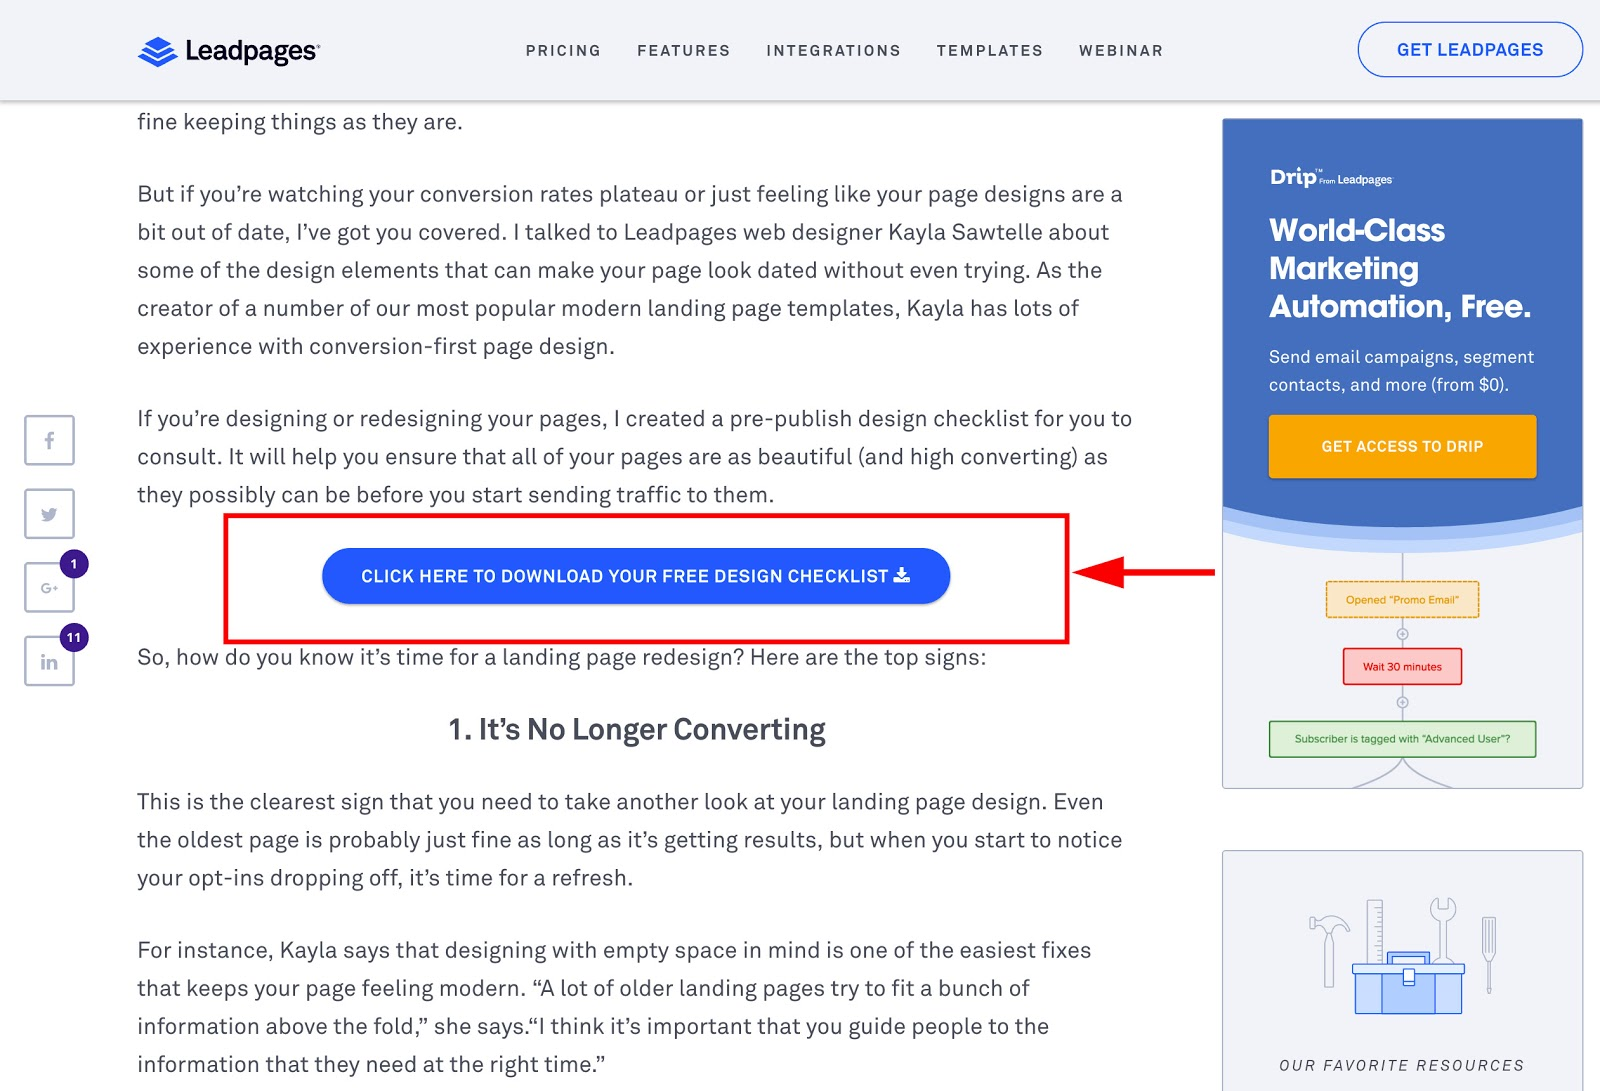 Image of LeadPages.net's in-blog offers